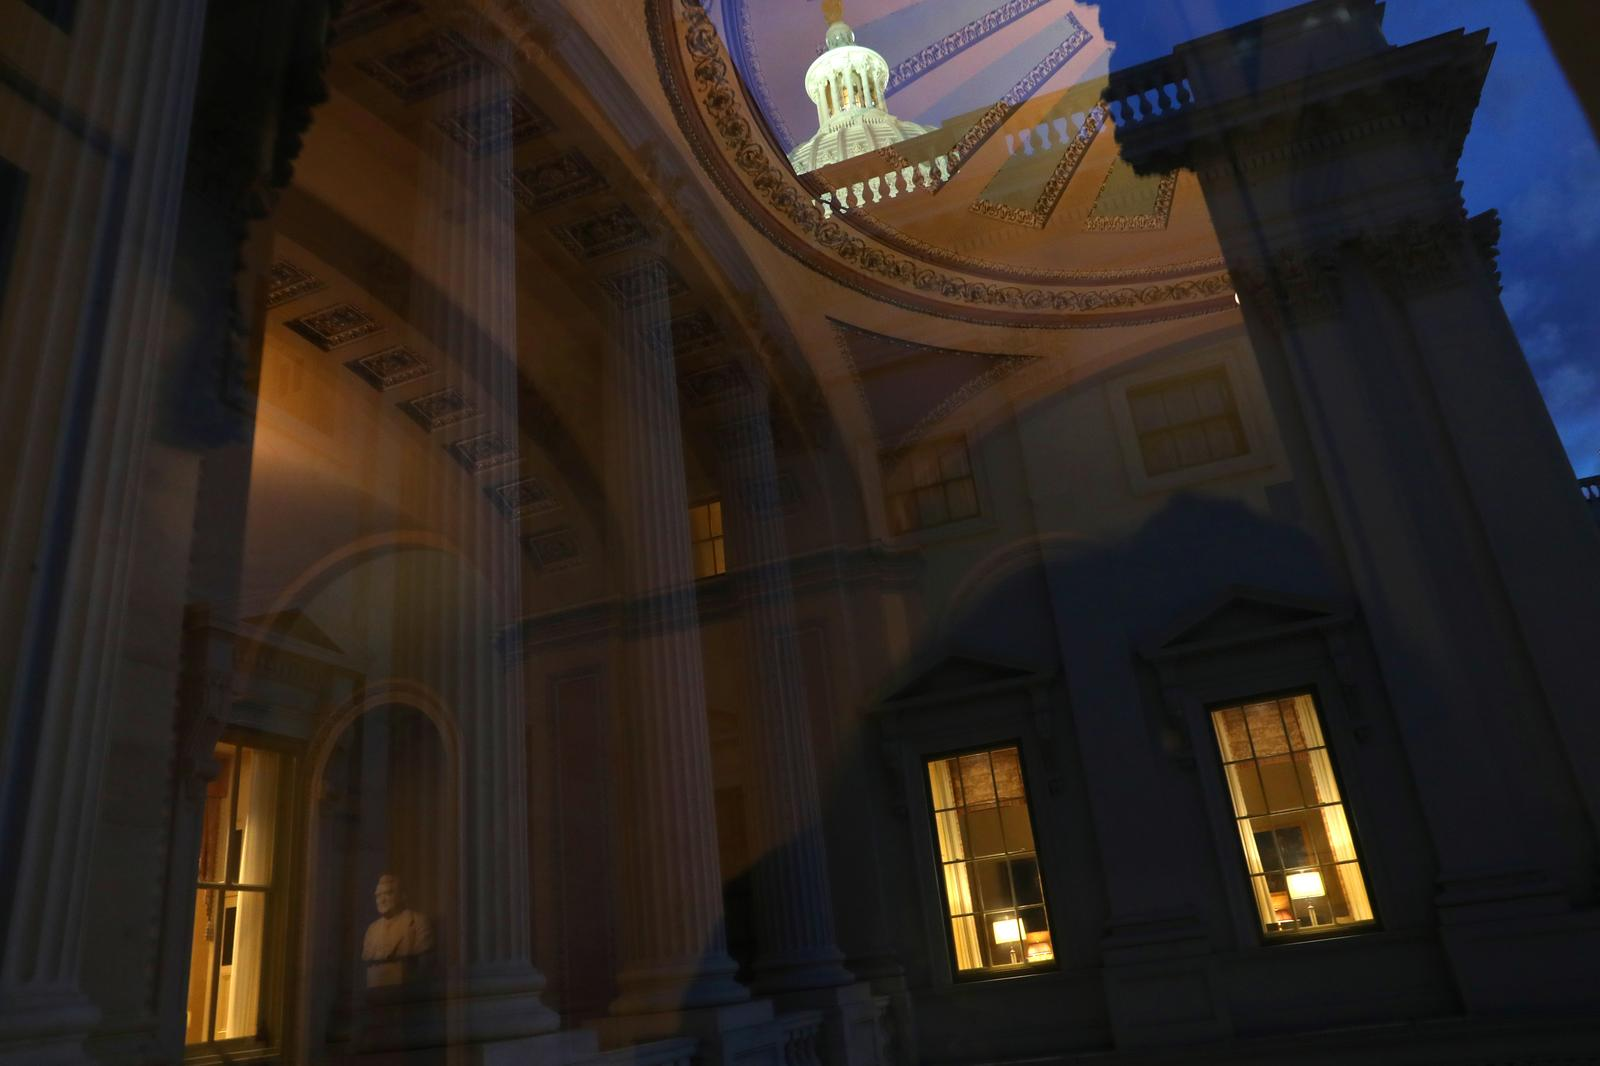 Office lights are seen at the U.S. Capitol as lawmakers work into the evening while the U.S. Senate face a decision over approving 2,000 dollars stimulus checks on Capitol Hill in Washington, U.S., December 30, 2020. Photo: Reuters